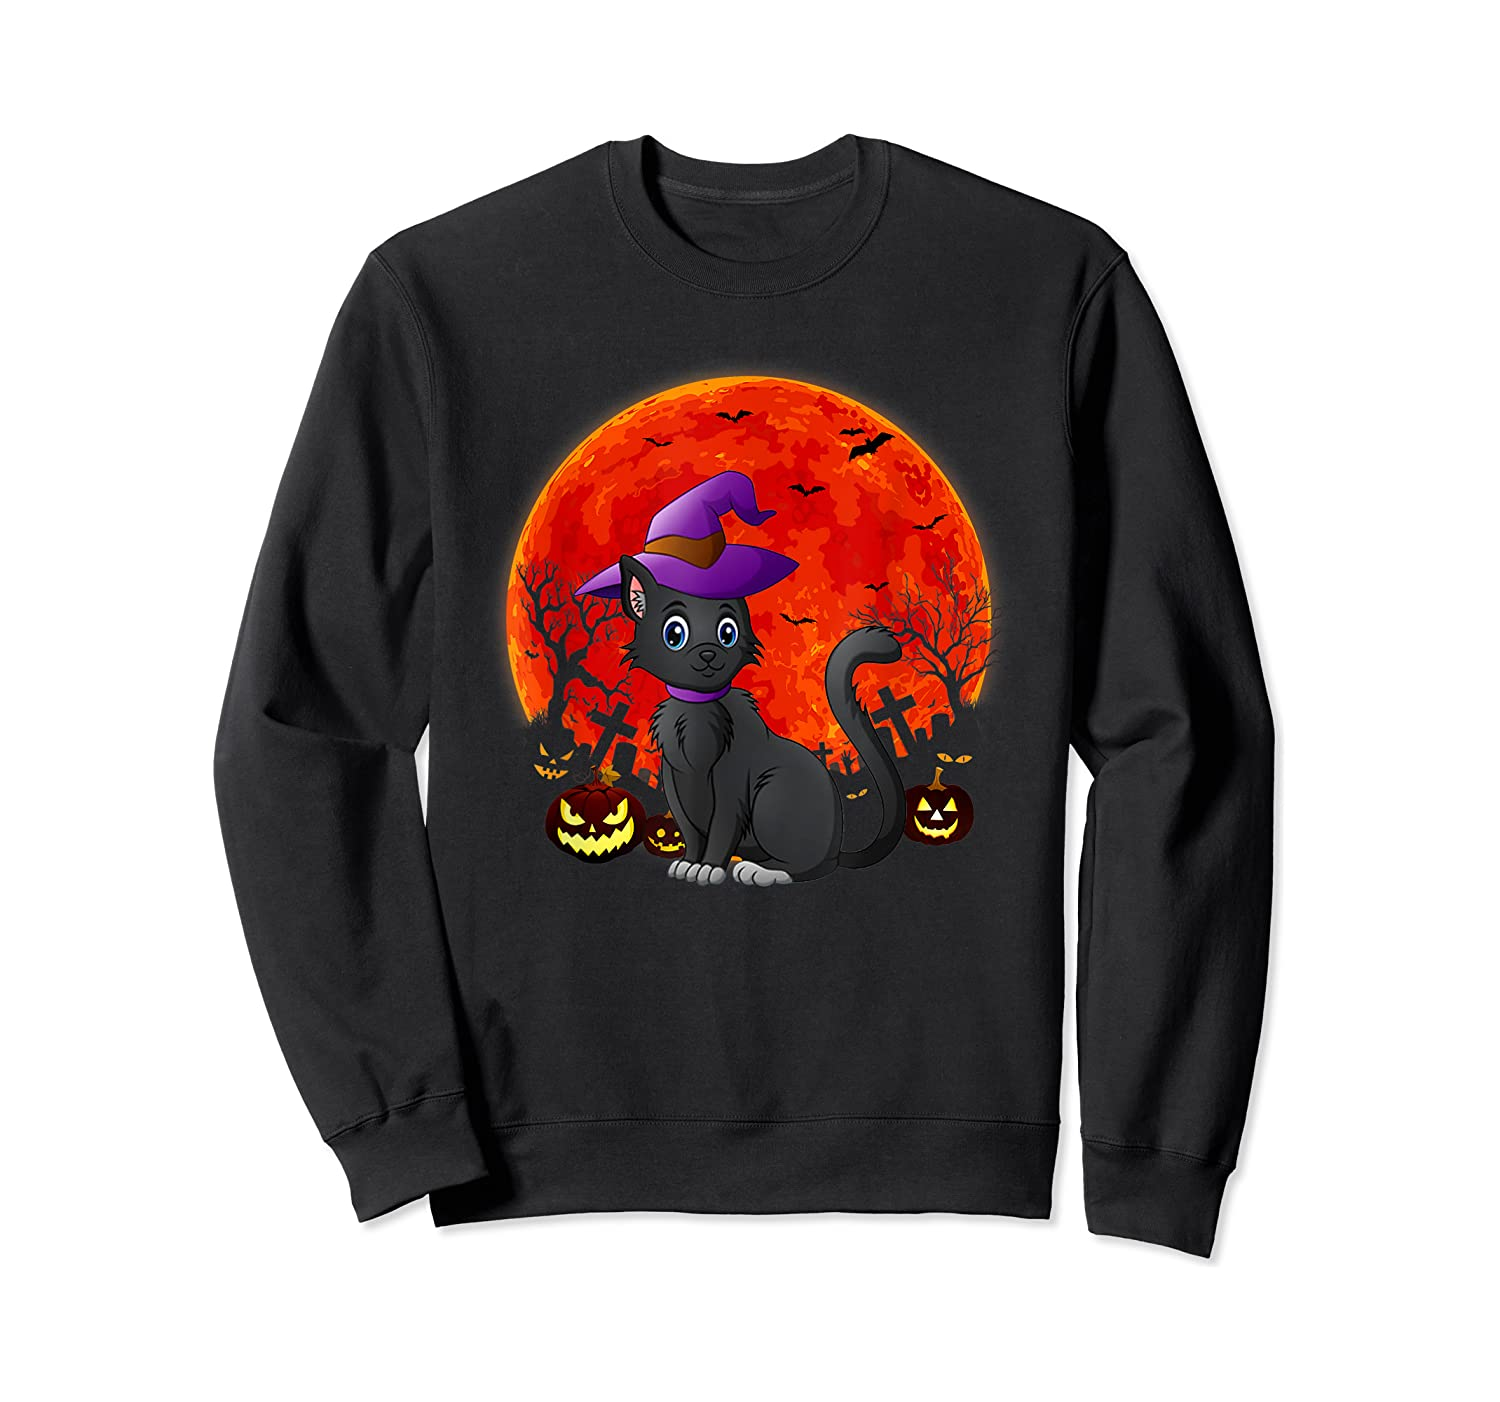 Vintage Scary Halloween Black Cat Costume Witch Hat & Moon T-shirt Crewneck Sweater